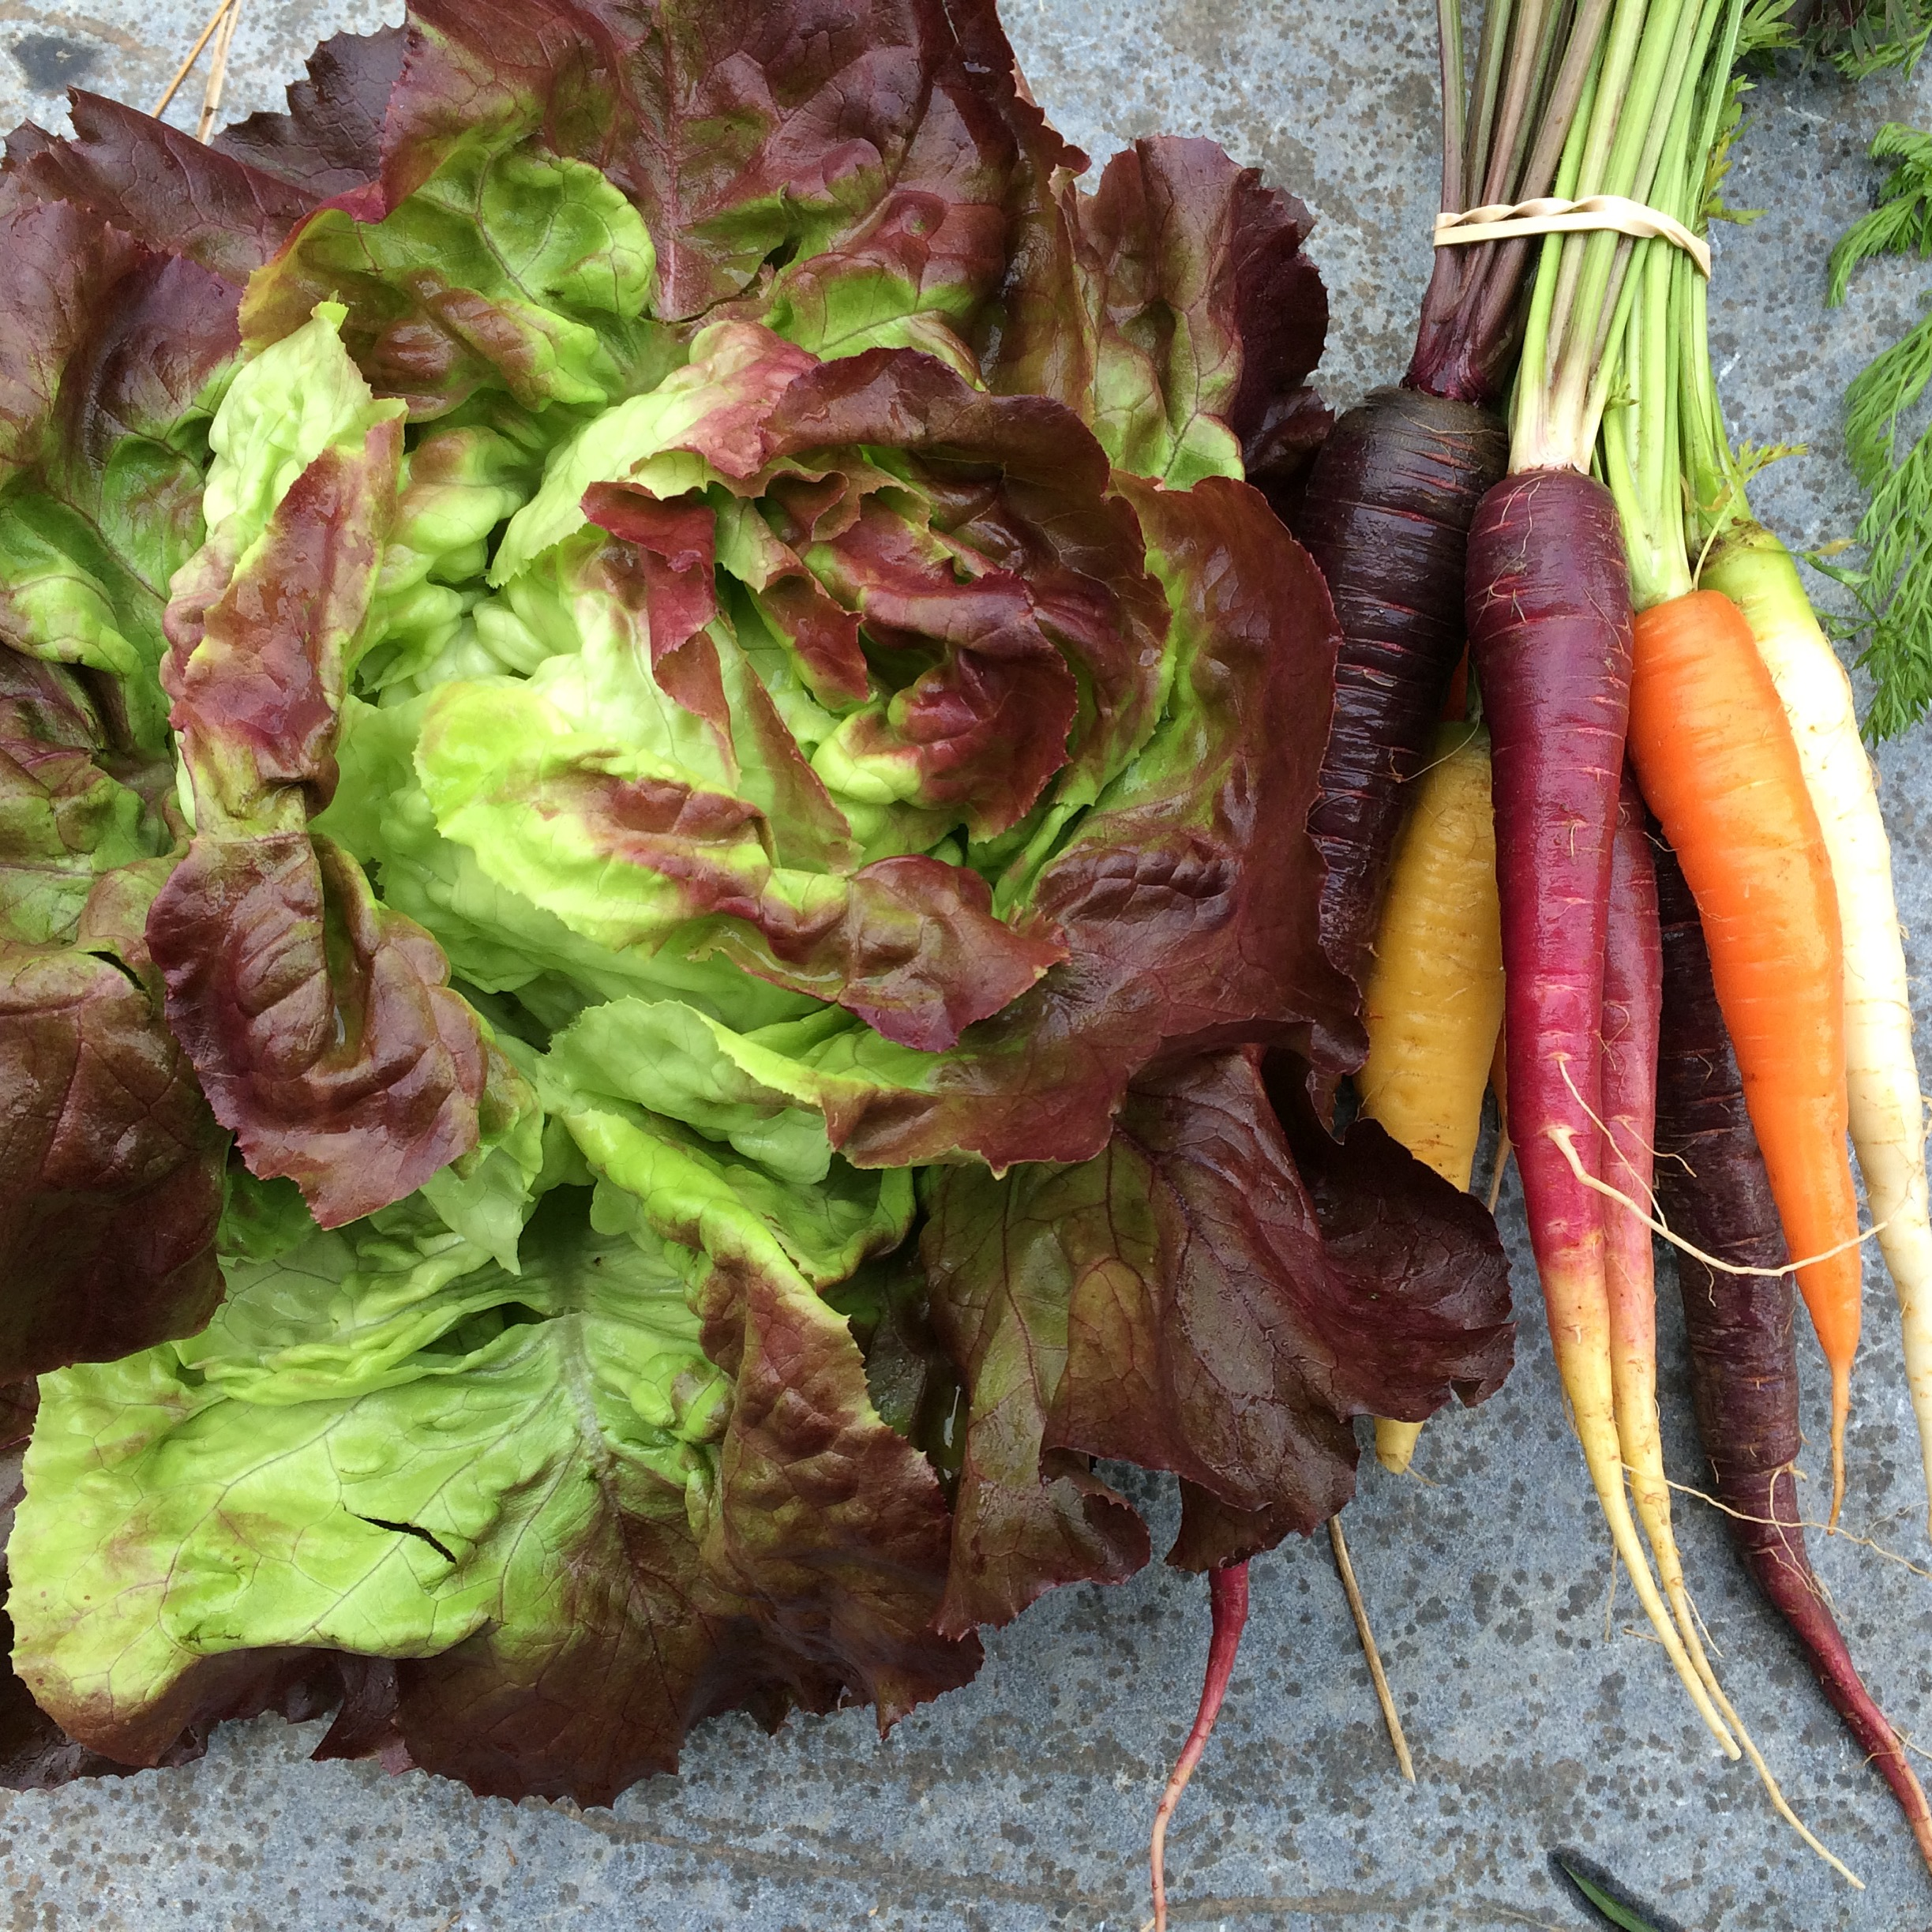 Our beautiful, crunchy red butterhead lettuce and rainbow carrots